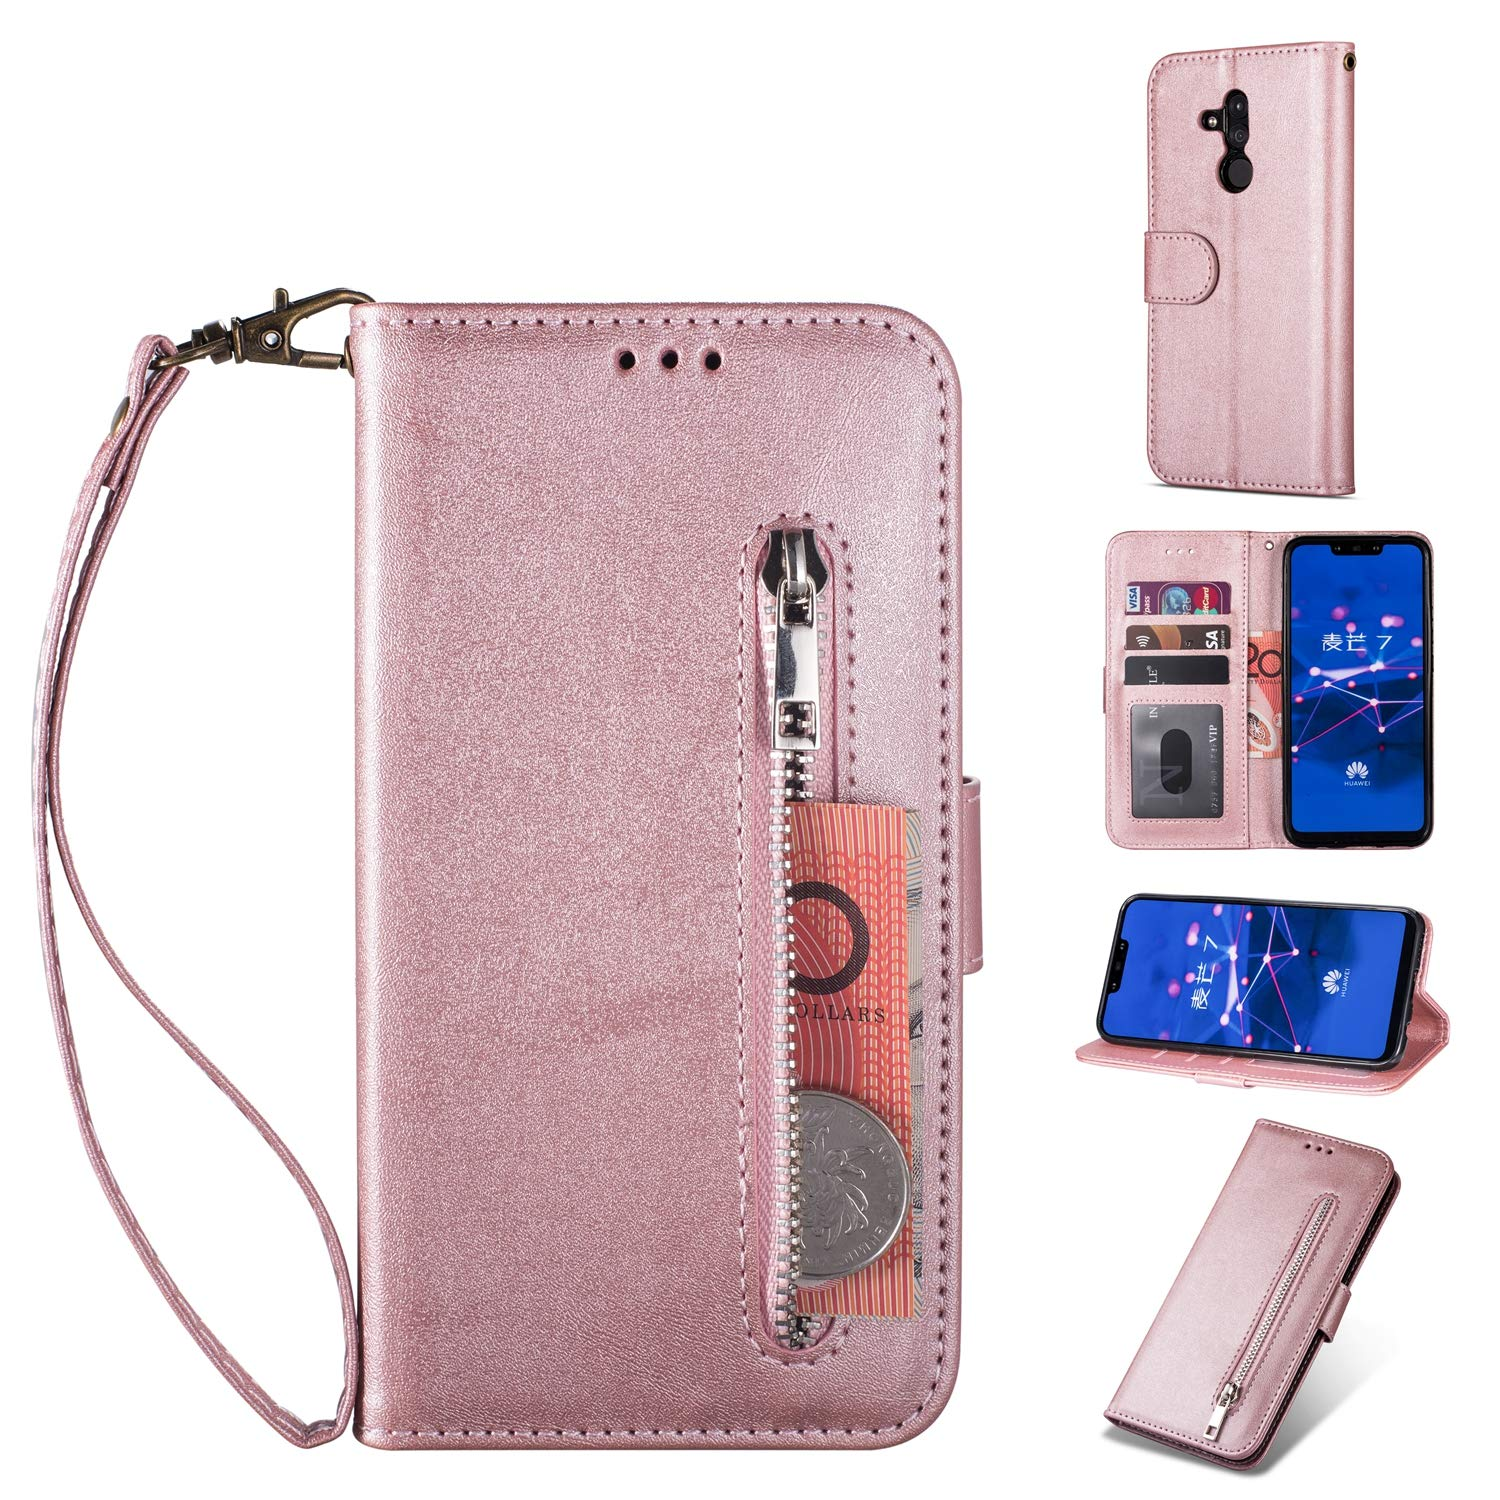 Zipper Wallet Case with Black Dual-use Pen for Huawei Mate 20 Lite,Aoucase Money Coin Pocket Card Holder Shock Resistant Strap Purse PU Leather Case for Huawei Mate 20 Lite - Rose Gold by Aoucase